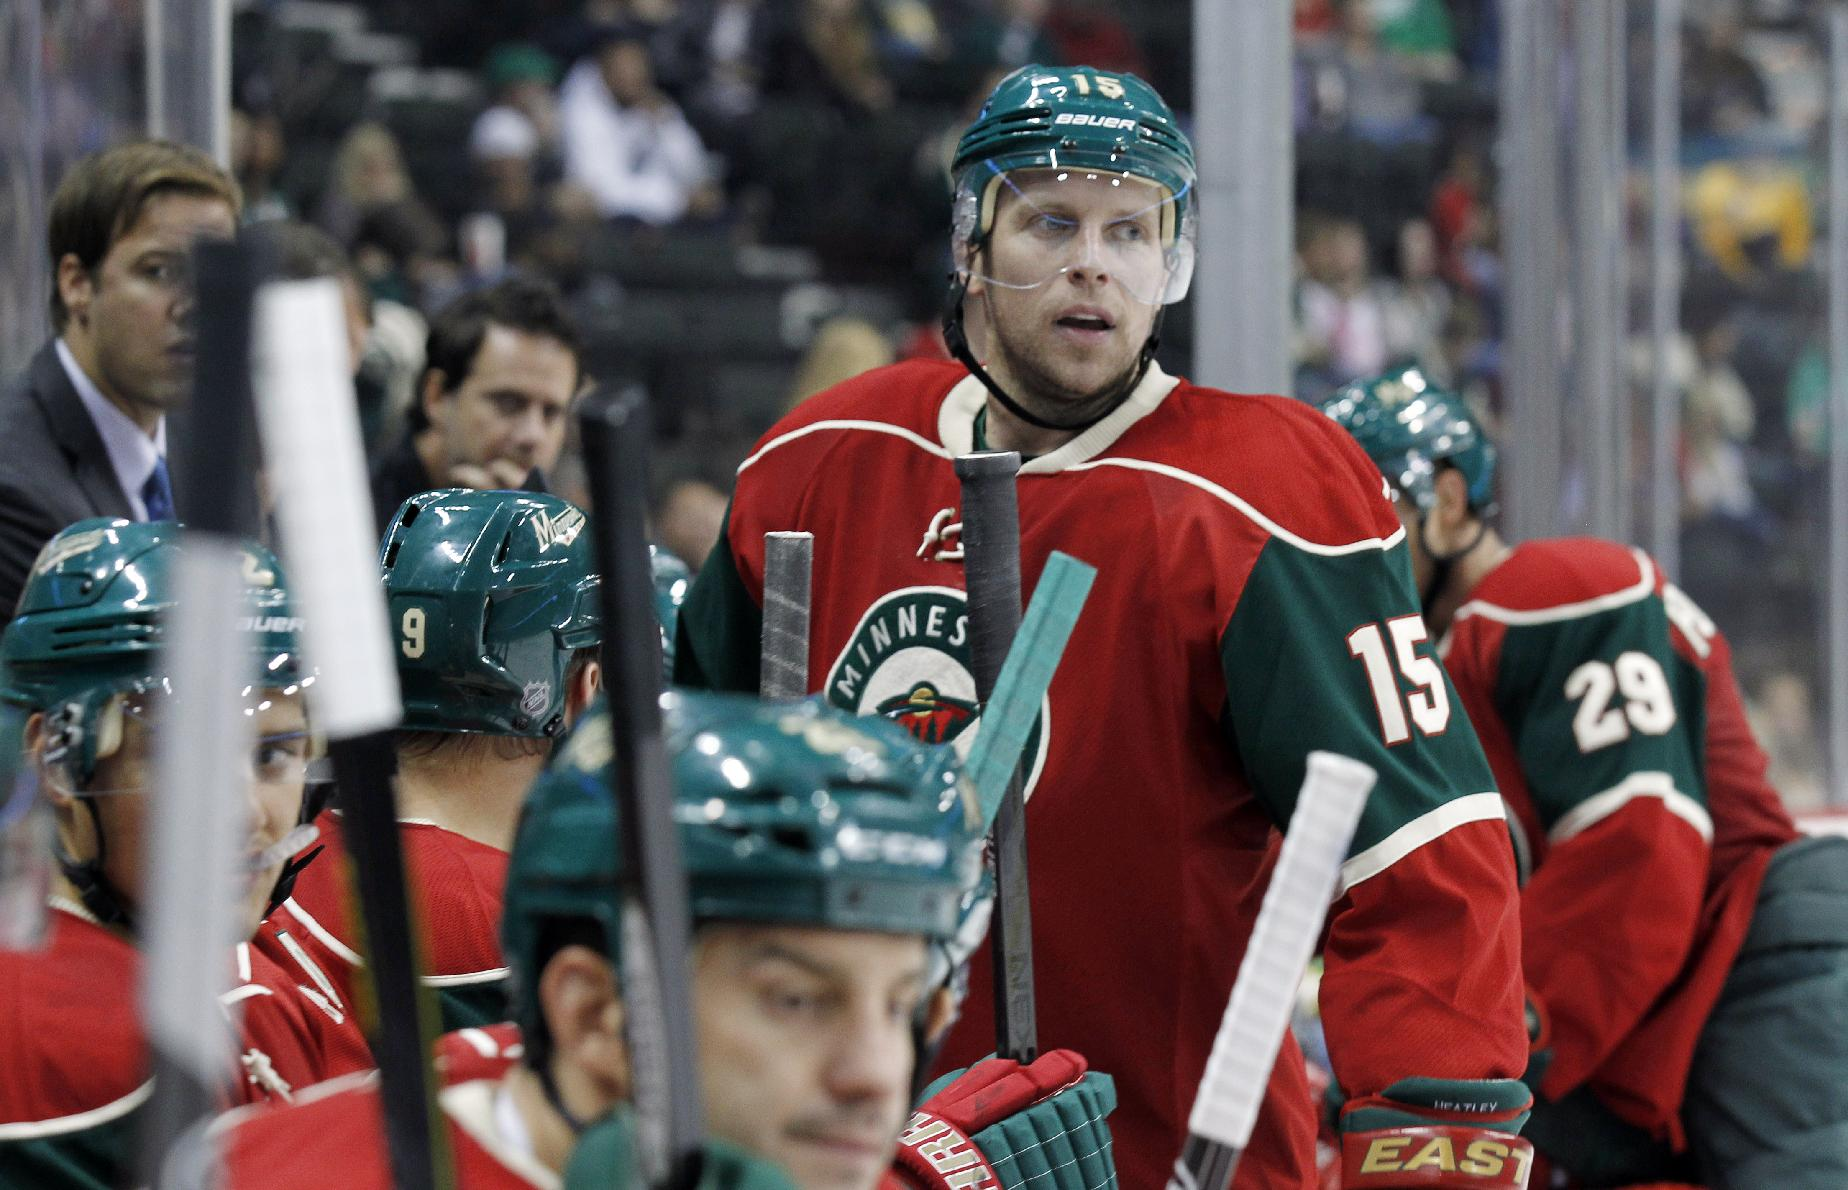 In this Sept. 25, 2013, file photo, Minnesota Wild right wing Dany Heatley (15), sits on the bench during the second period of a preseason NHL hockey game against the St. Louis Blues in St. Paul, Minn. Heatley, once one of the NHL's top goal scorers, has more of a supporting role these days, but the Wild are still counting on him to make some important contributions